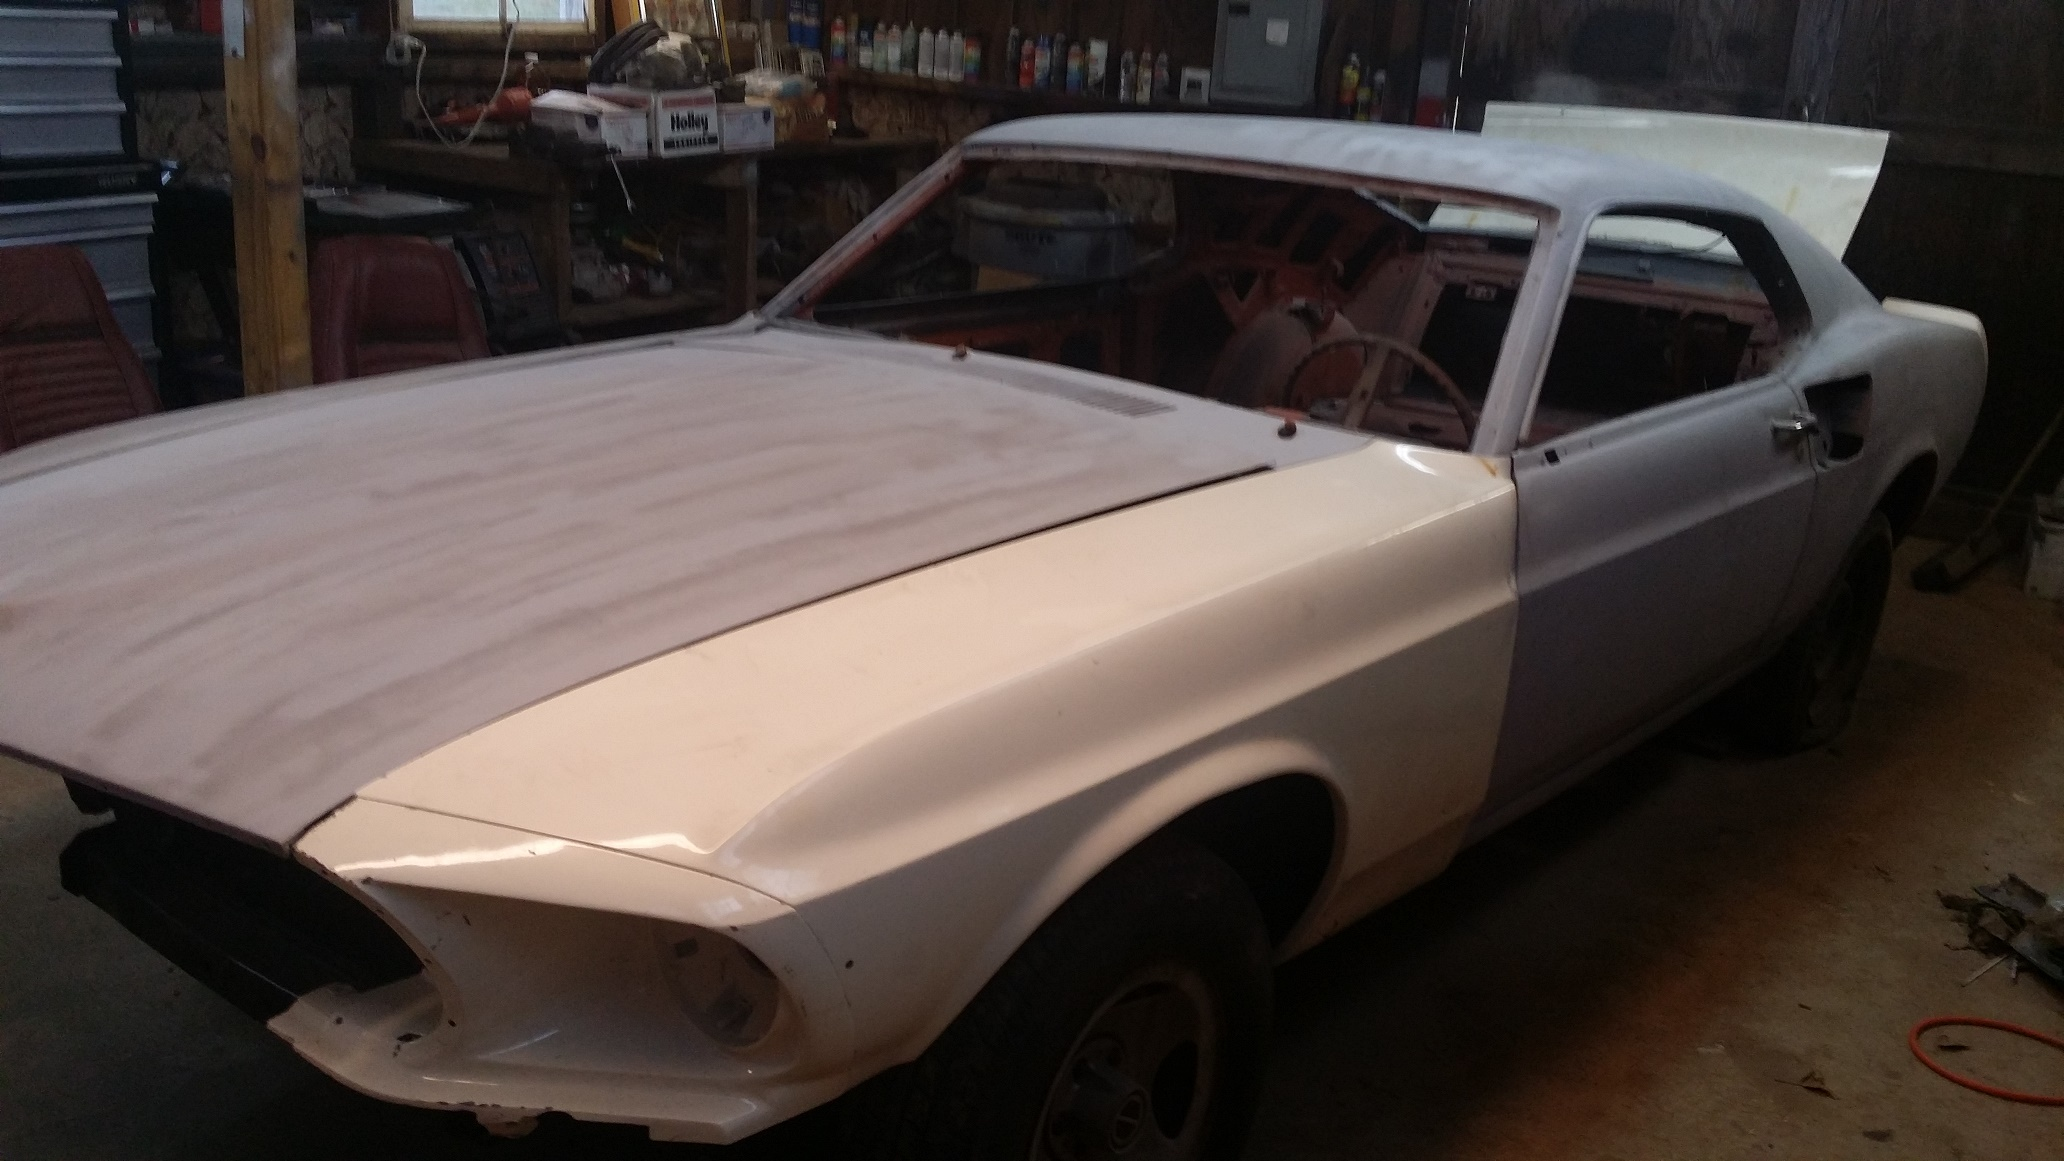 1969 Ford Mustang Mach 1 Project 5653 R Code 4 Spd We Benzamotors Fastback 428 Cj 24900